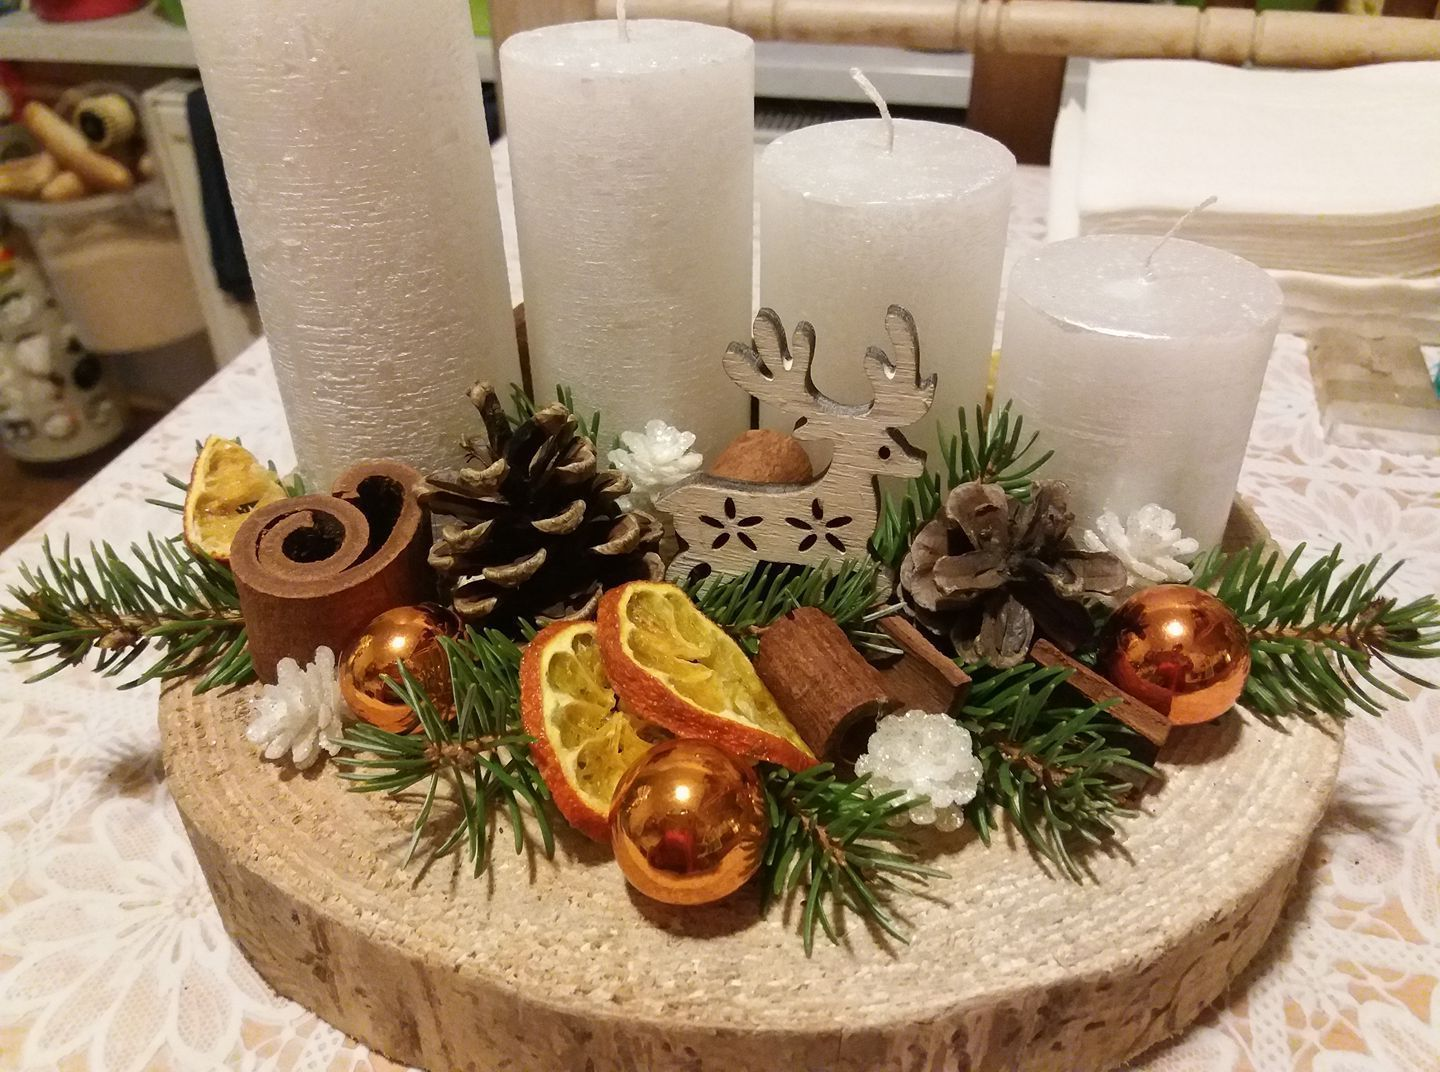 70 Simple And Popular Christmas Decorations Table Decorations Christmas Cand Christmas Candle Centerpiece Christmas Centerpieces Christmas Candles